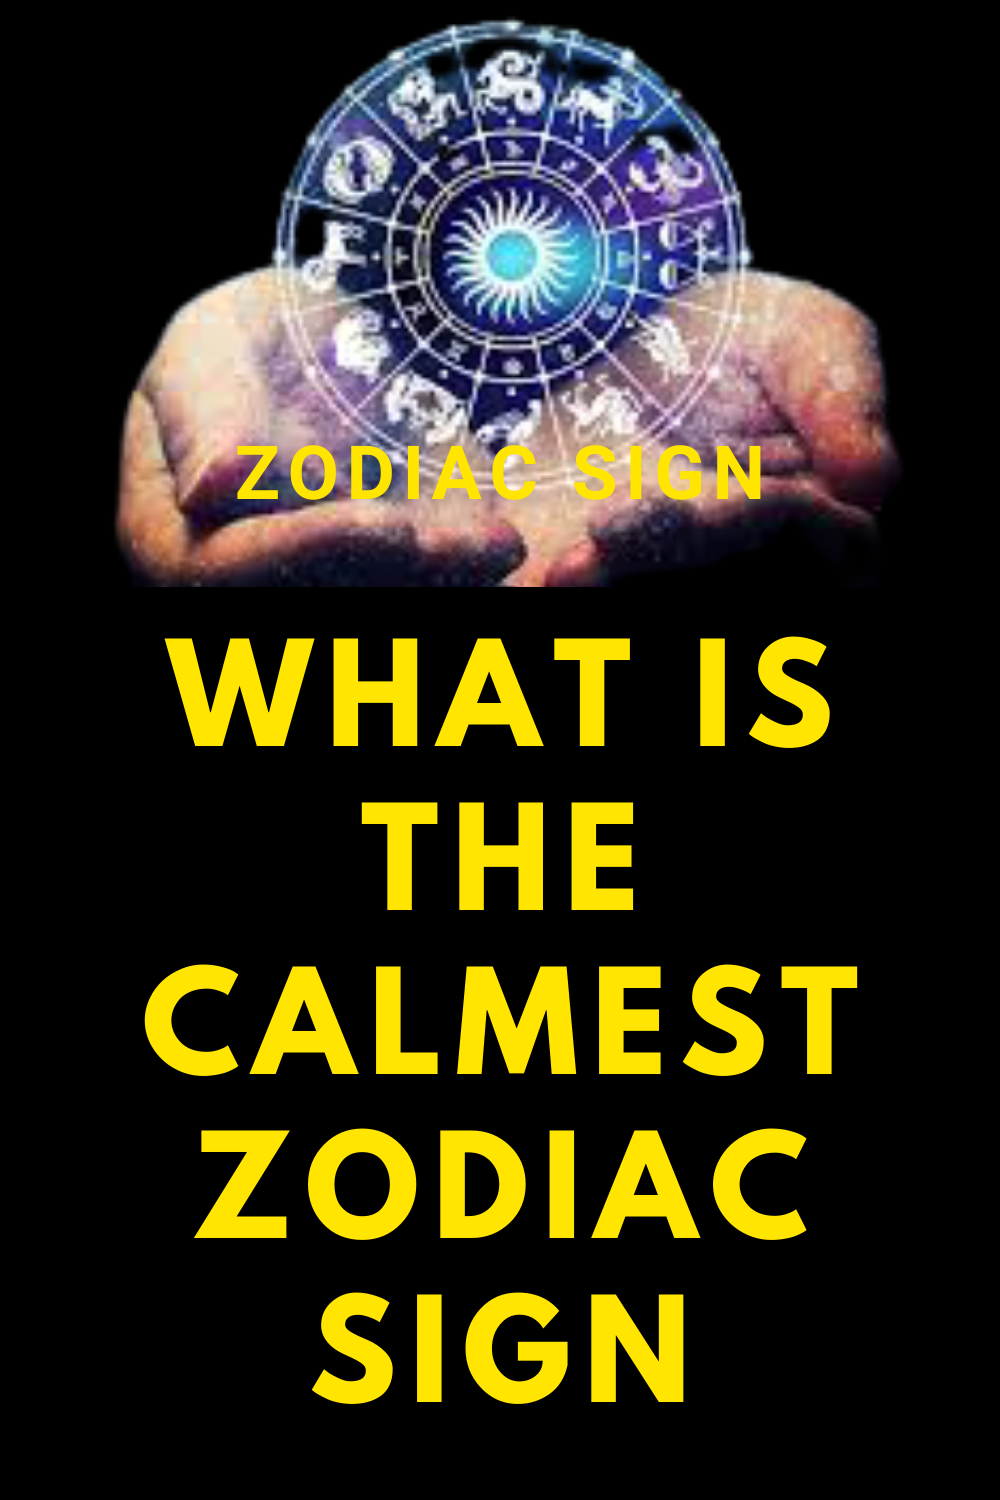 What is the calmest zodiac sign